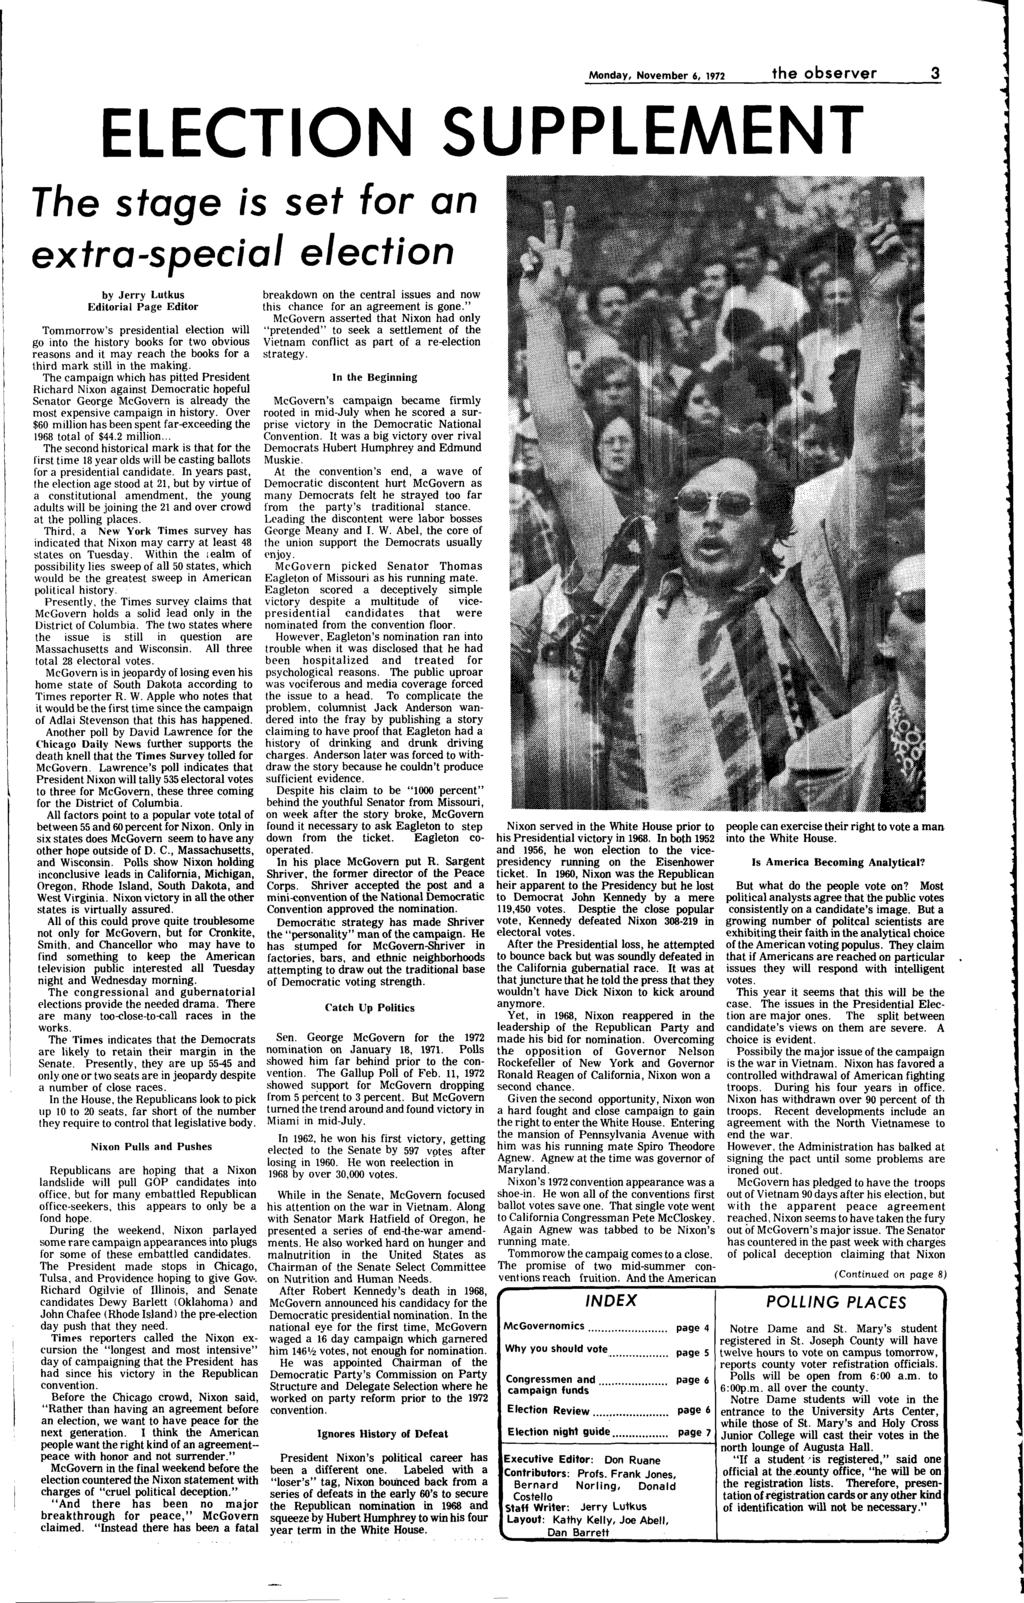 Monday, Novembe 6, 1972 the obseve 3 ELECTON SUPPLEMENT The stage is set fo an exta-special election by Jey Lutkus Editoial Page Edito Tommoow's pesidential election will go into the histoy books fo